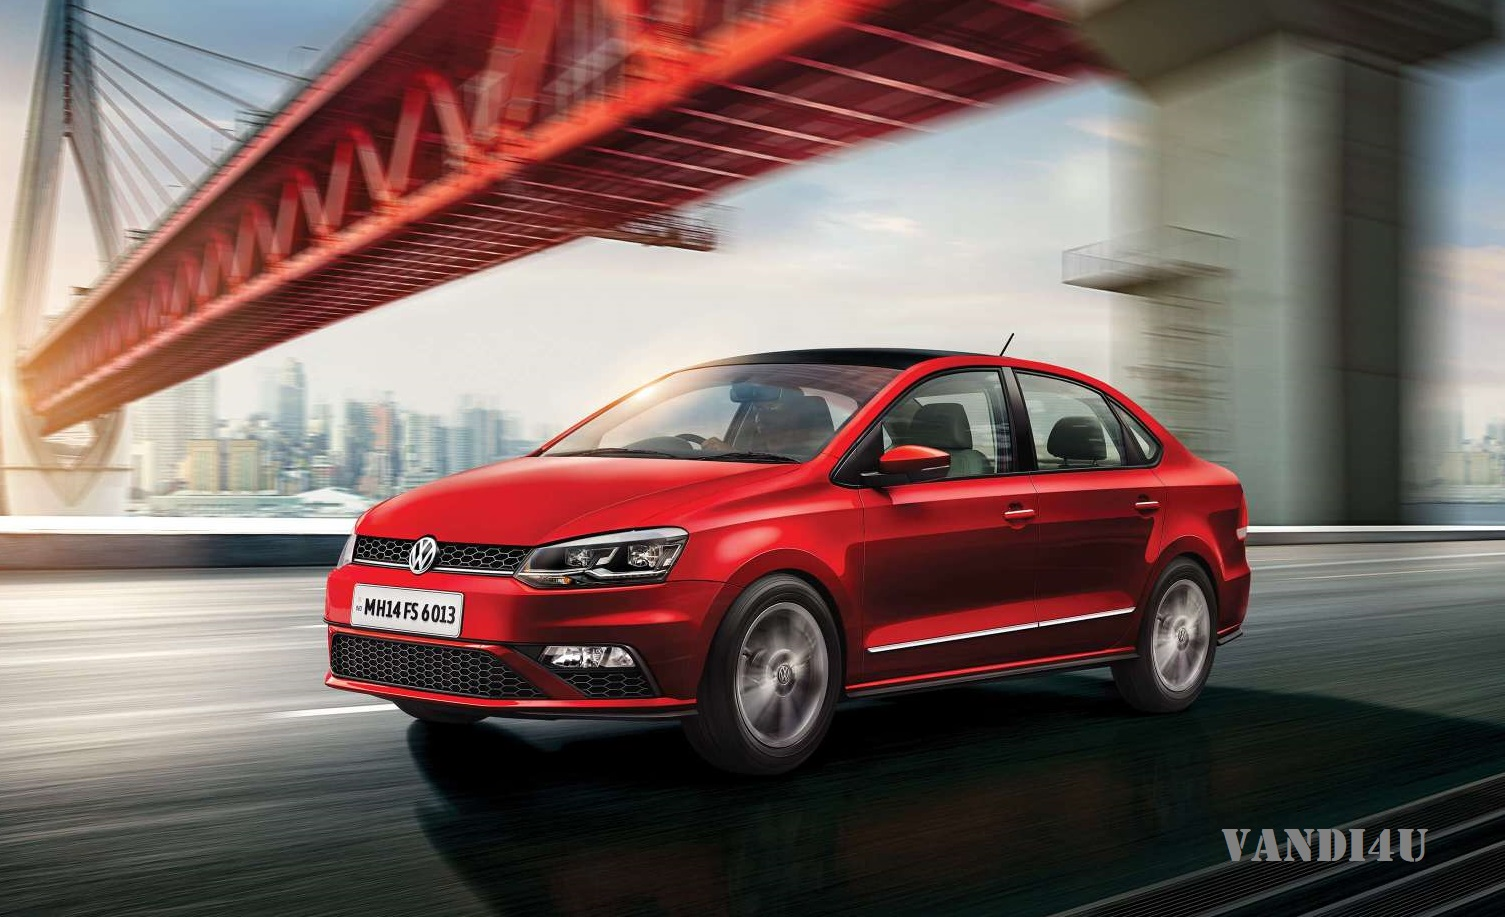 2019 Volkswagen Polo And Vento Facelifts Launched In India | VANDI4U